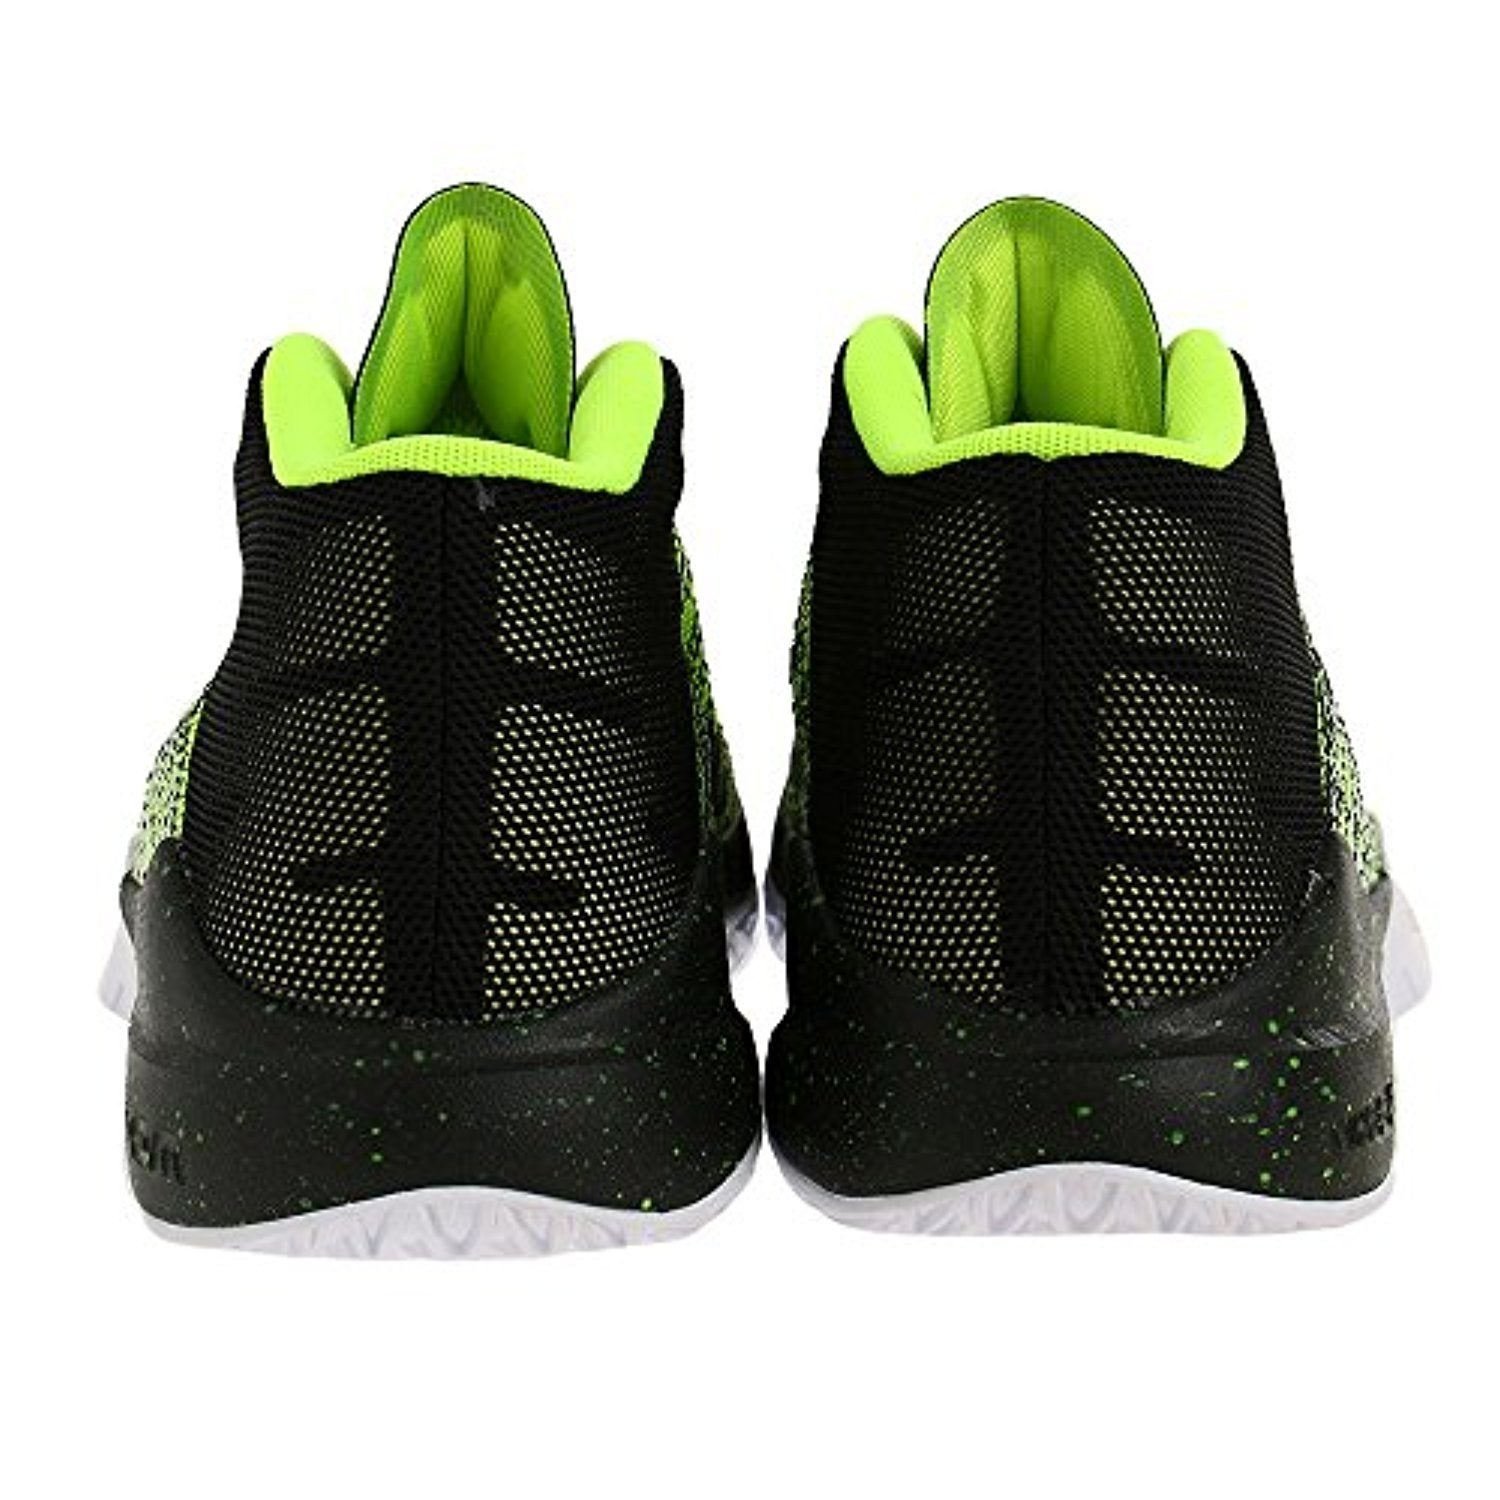 21498a845e0d46 Shop Boy s Nike Zoom Ascention (GS) Basketball Shoe Volt Black White - Free  Shipping Today - Overstock - 18280503